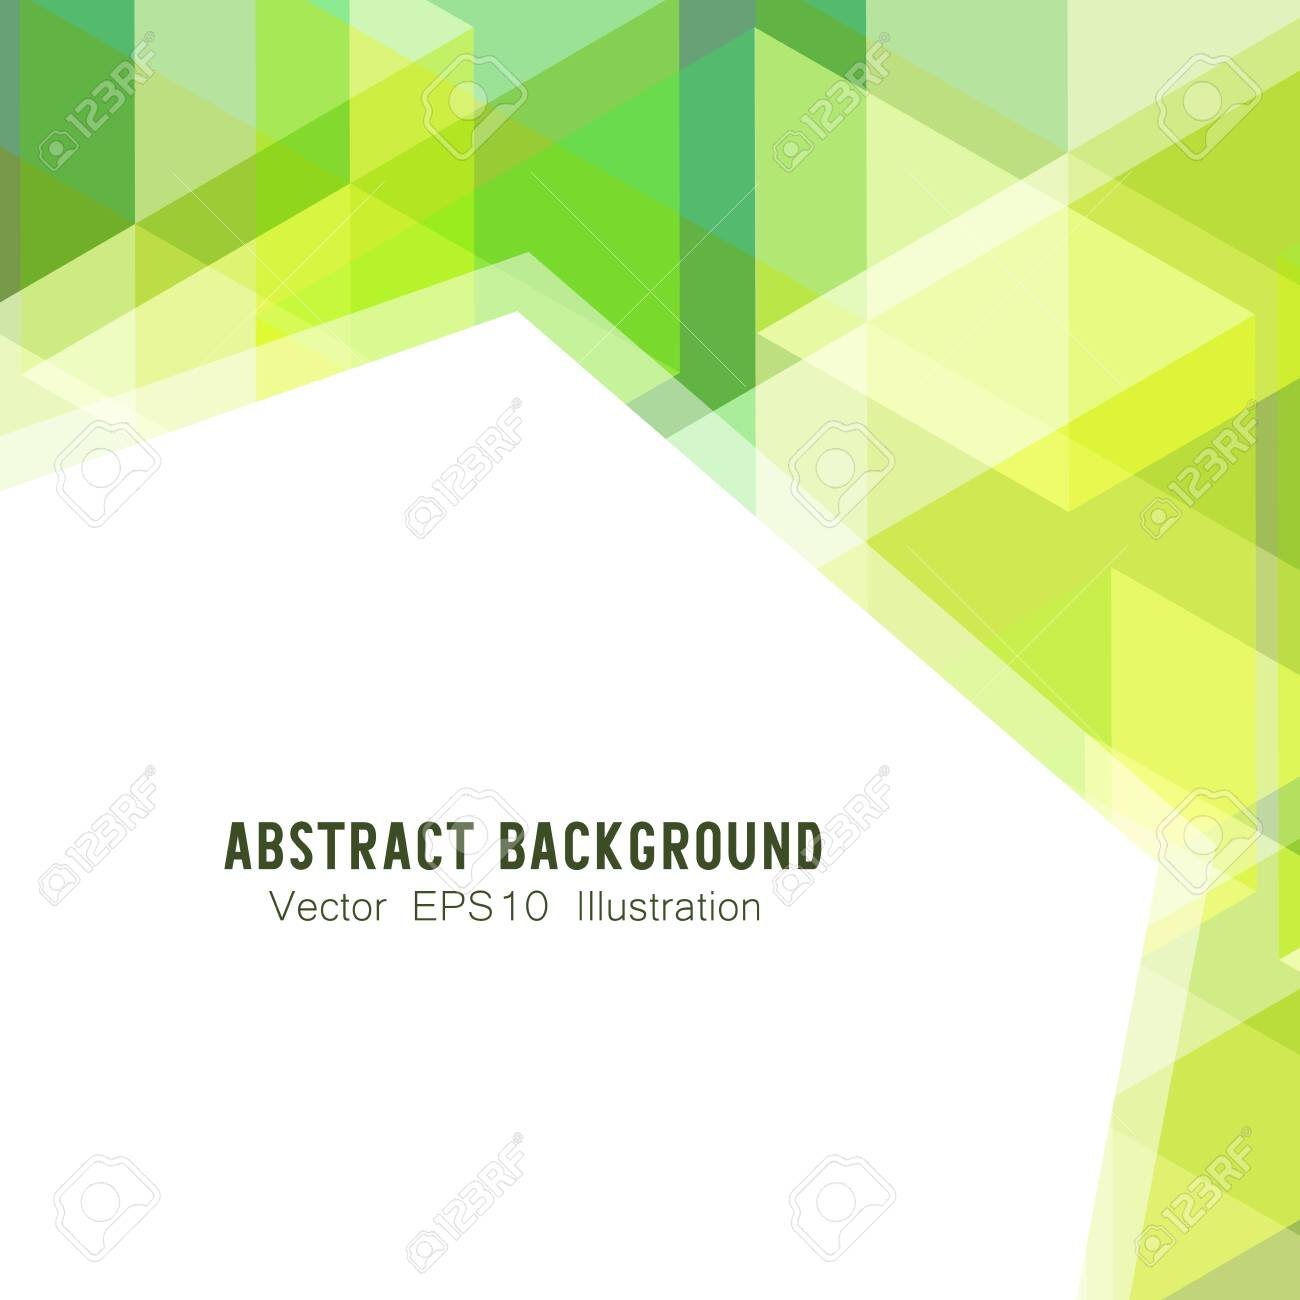 Abstract geometric or isometric white and green polygon or low poly vector technology concept background. EPS10 illustration style design. - 143653274